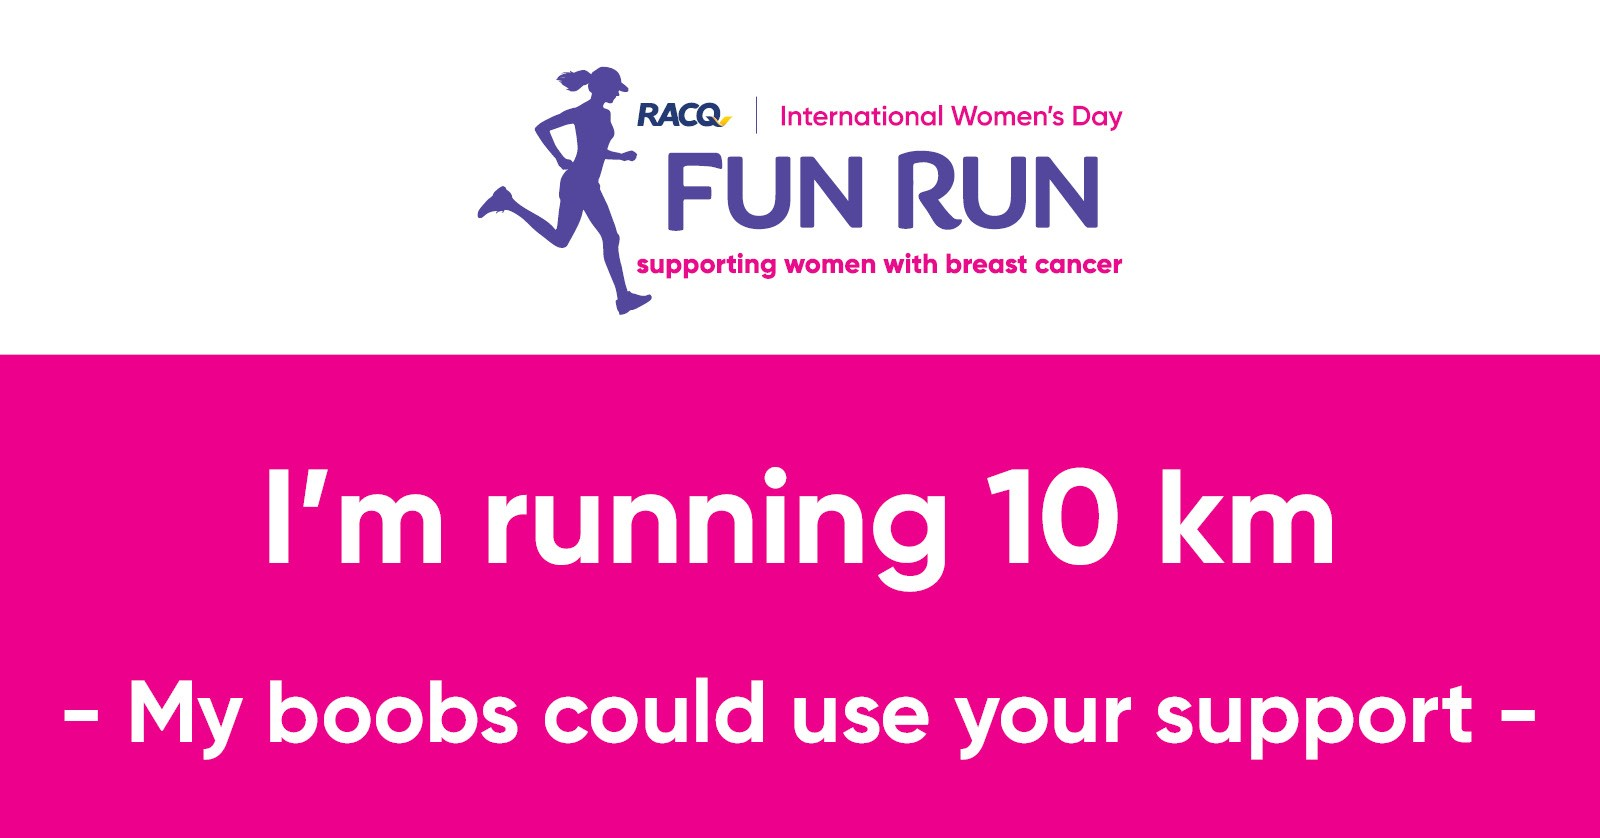 Facebook - I'm running 10 km - My boobs could use your support